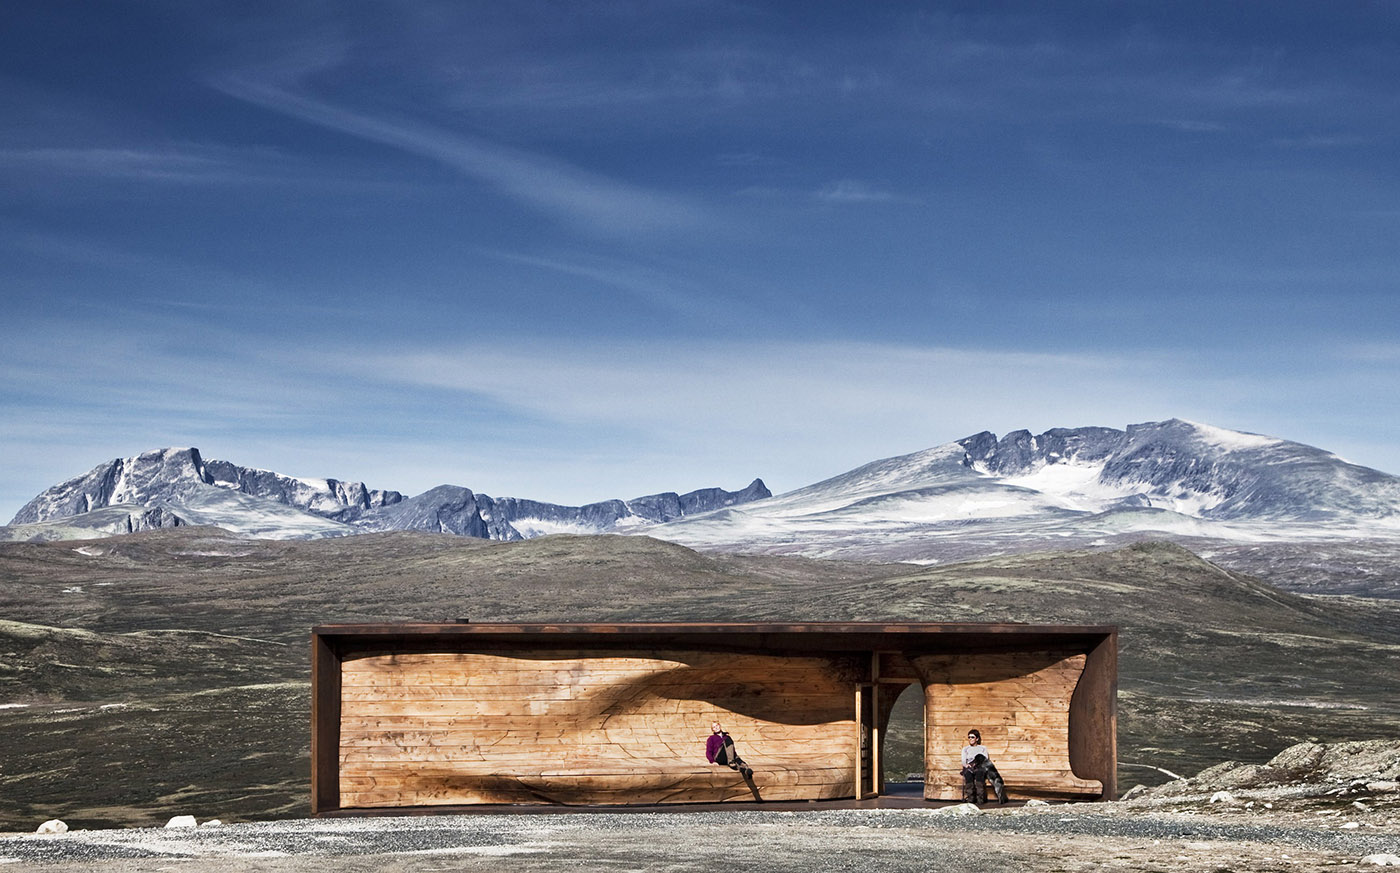 Wooden pavilion in the mountains